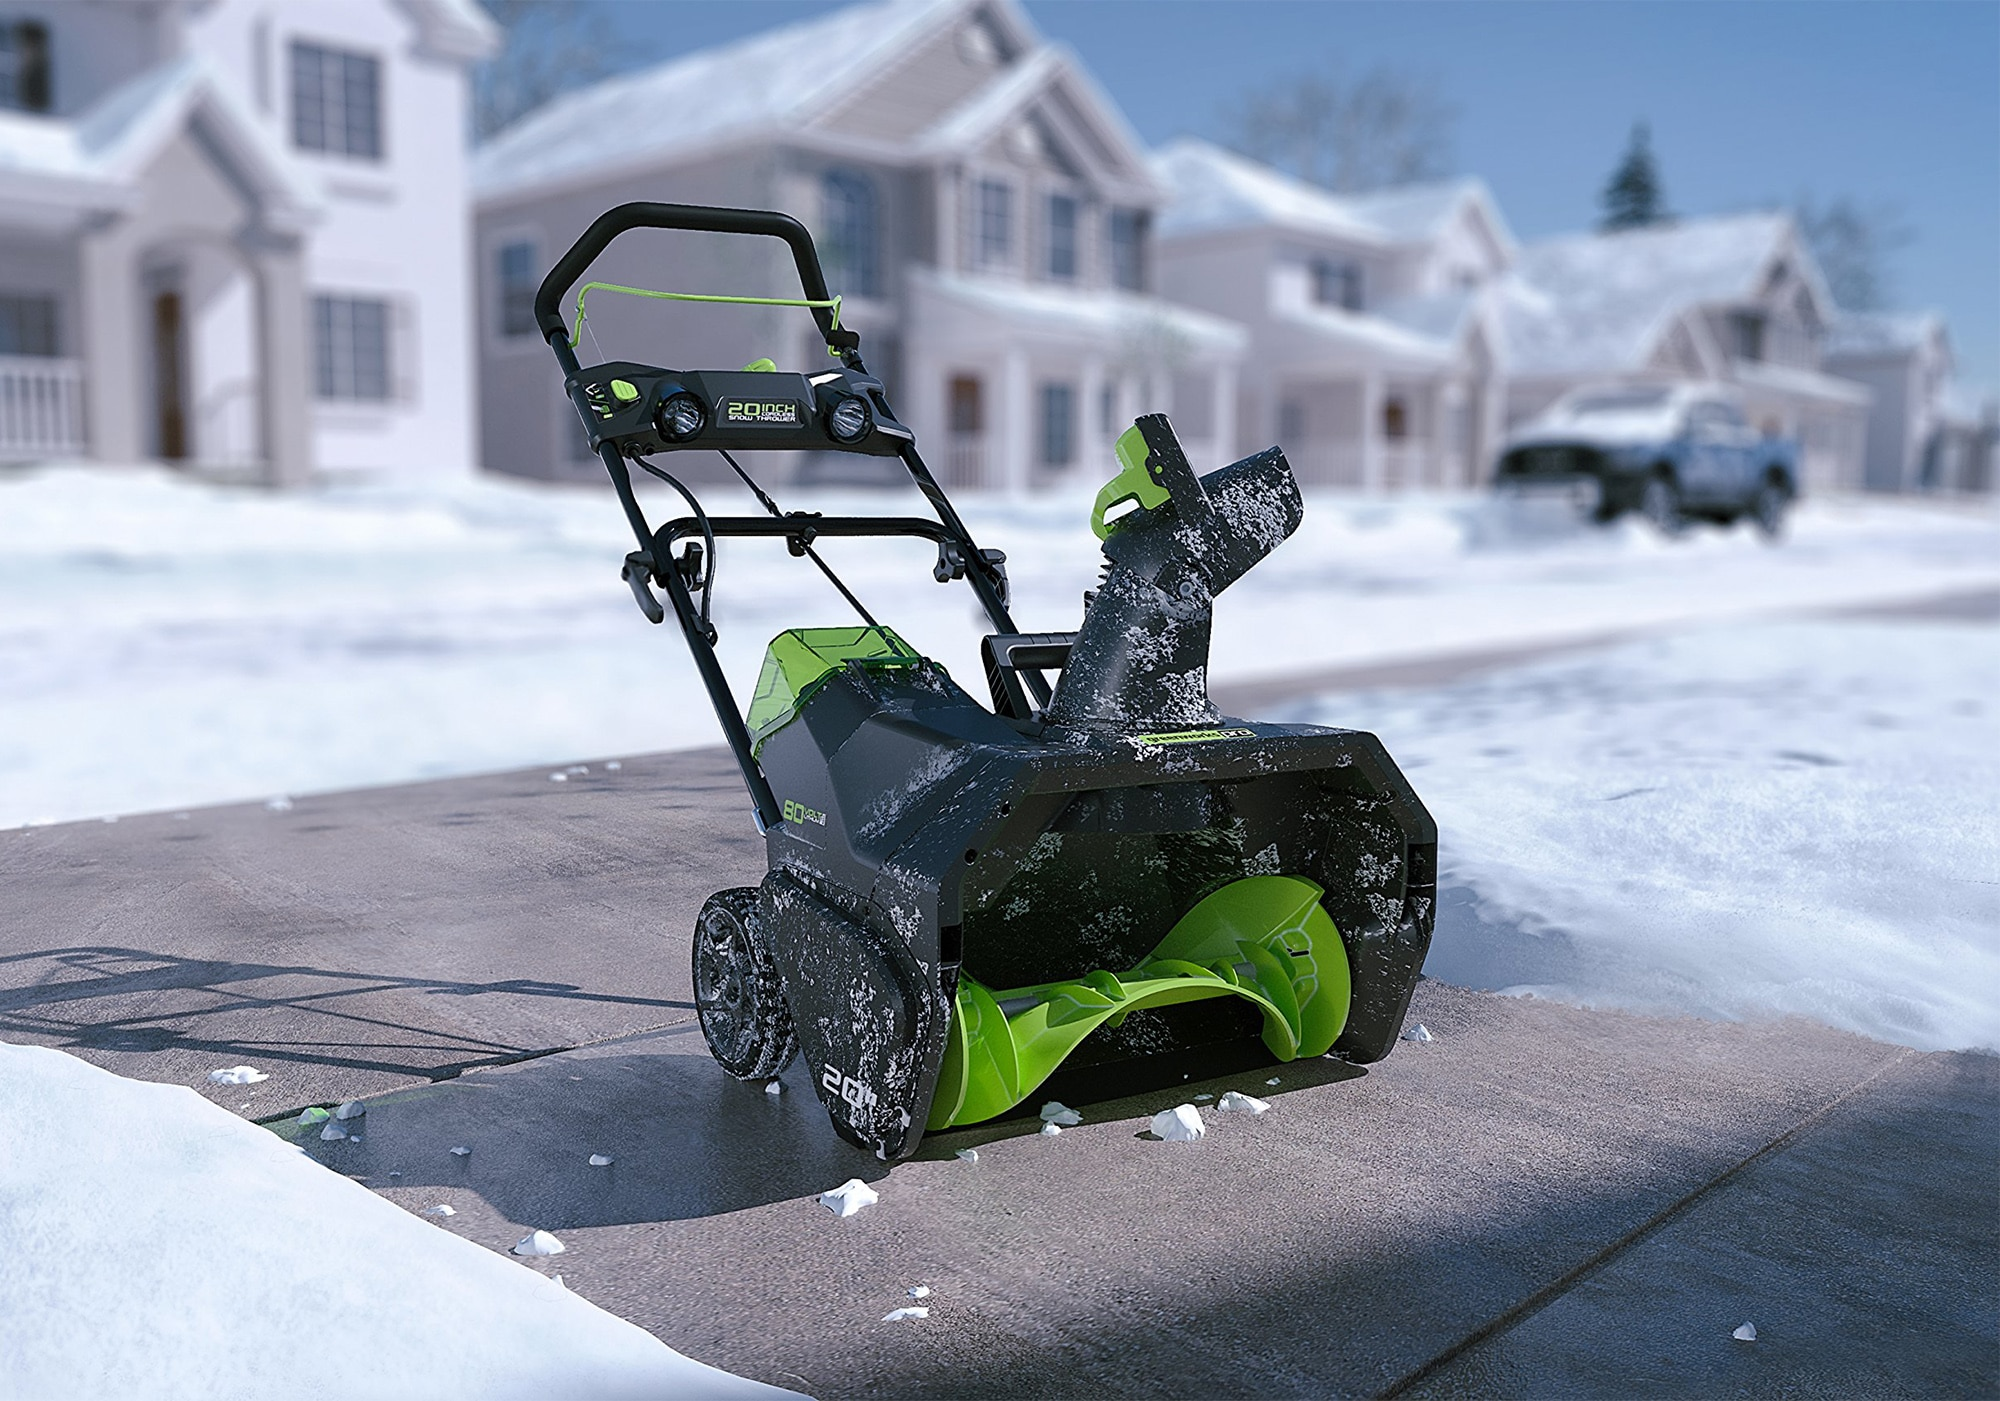 Best Electric Snow Blowers Reviewed in Detail